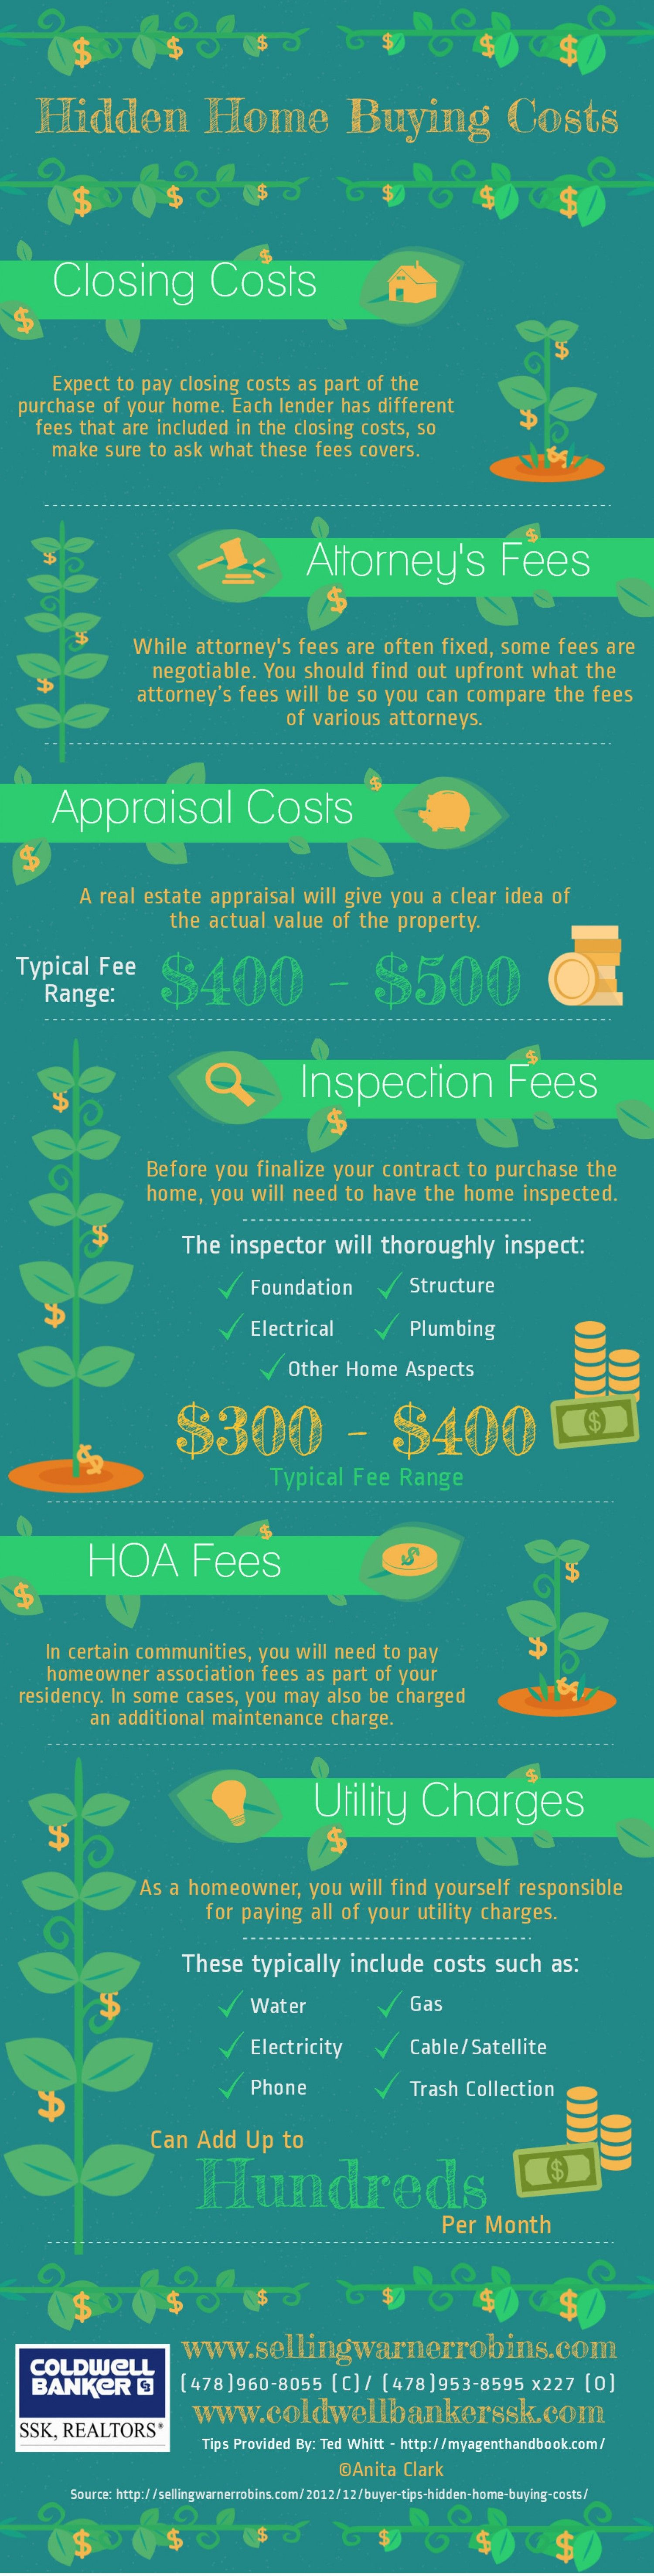 Hidden home buying costs infographic infographic